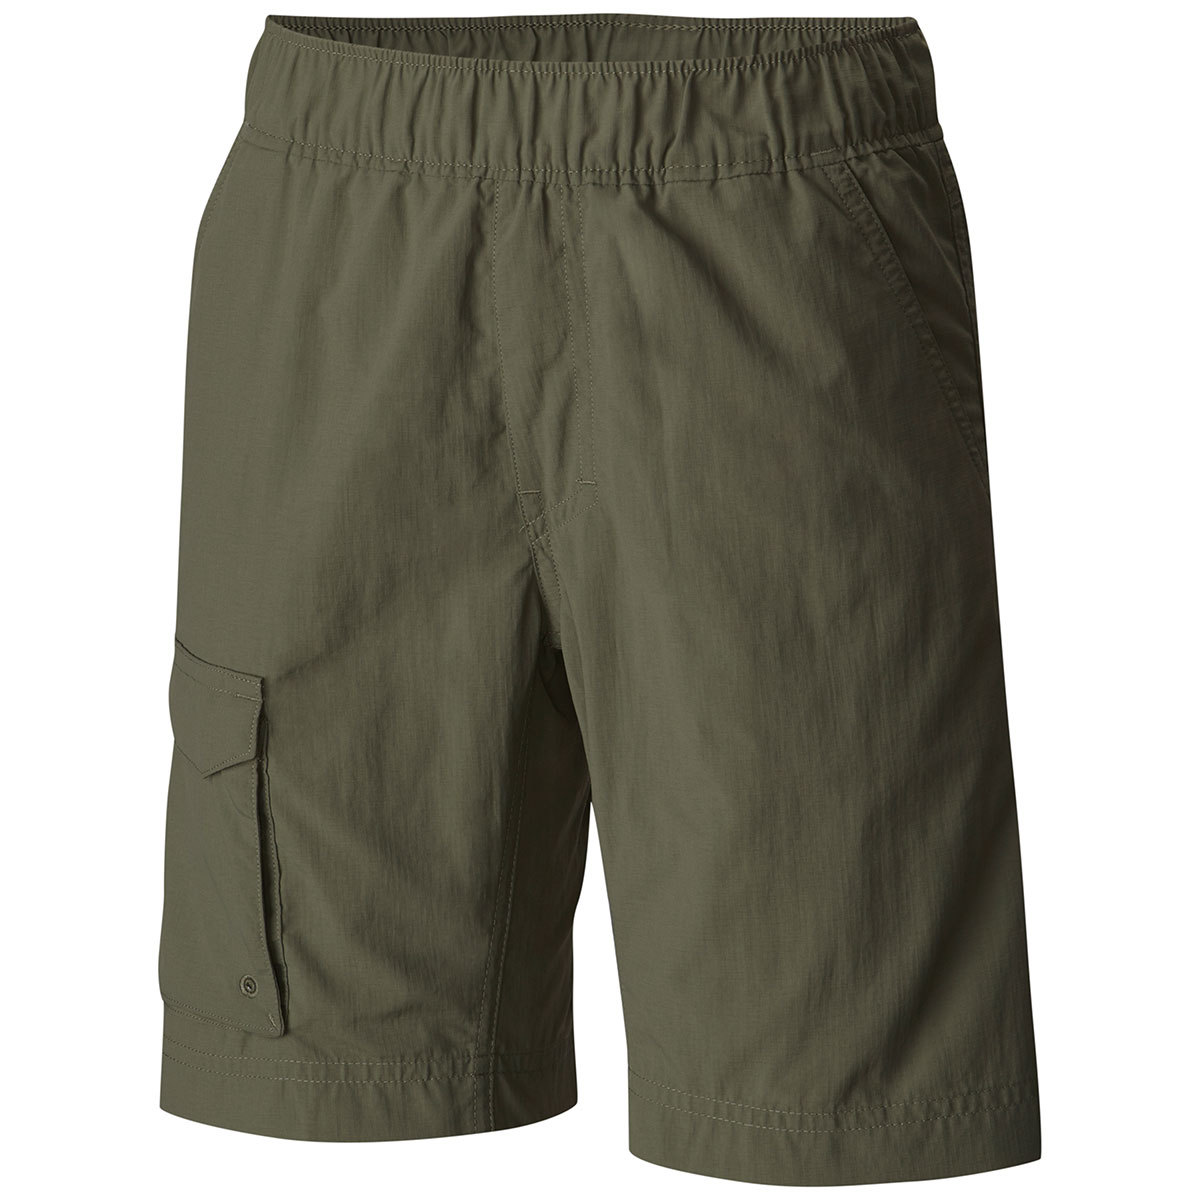 Columbia Boys' Silver Ridge Pull-On Shorts - Green, L